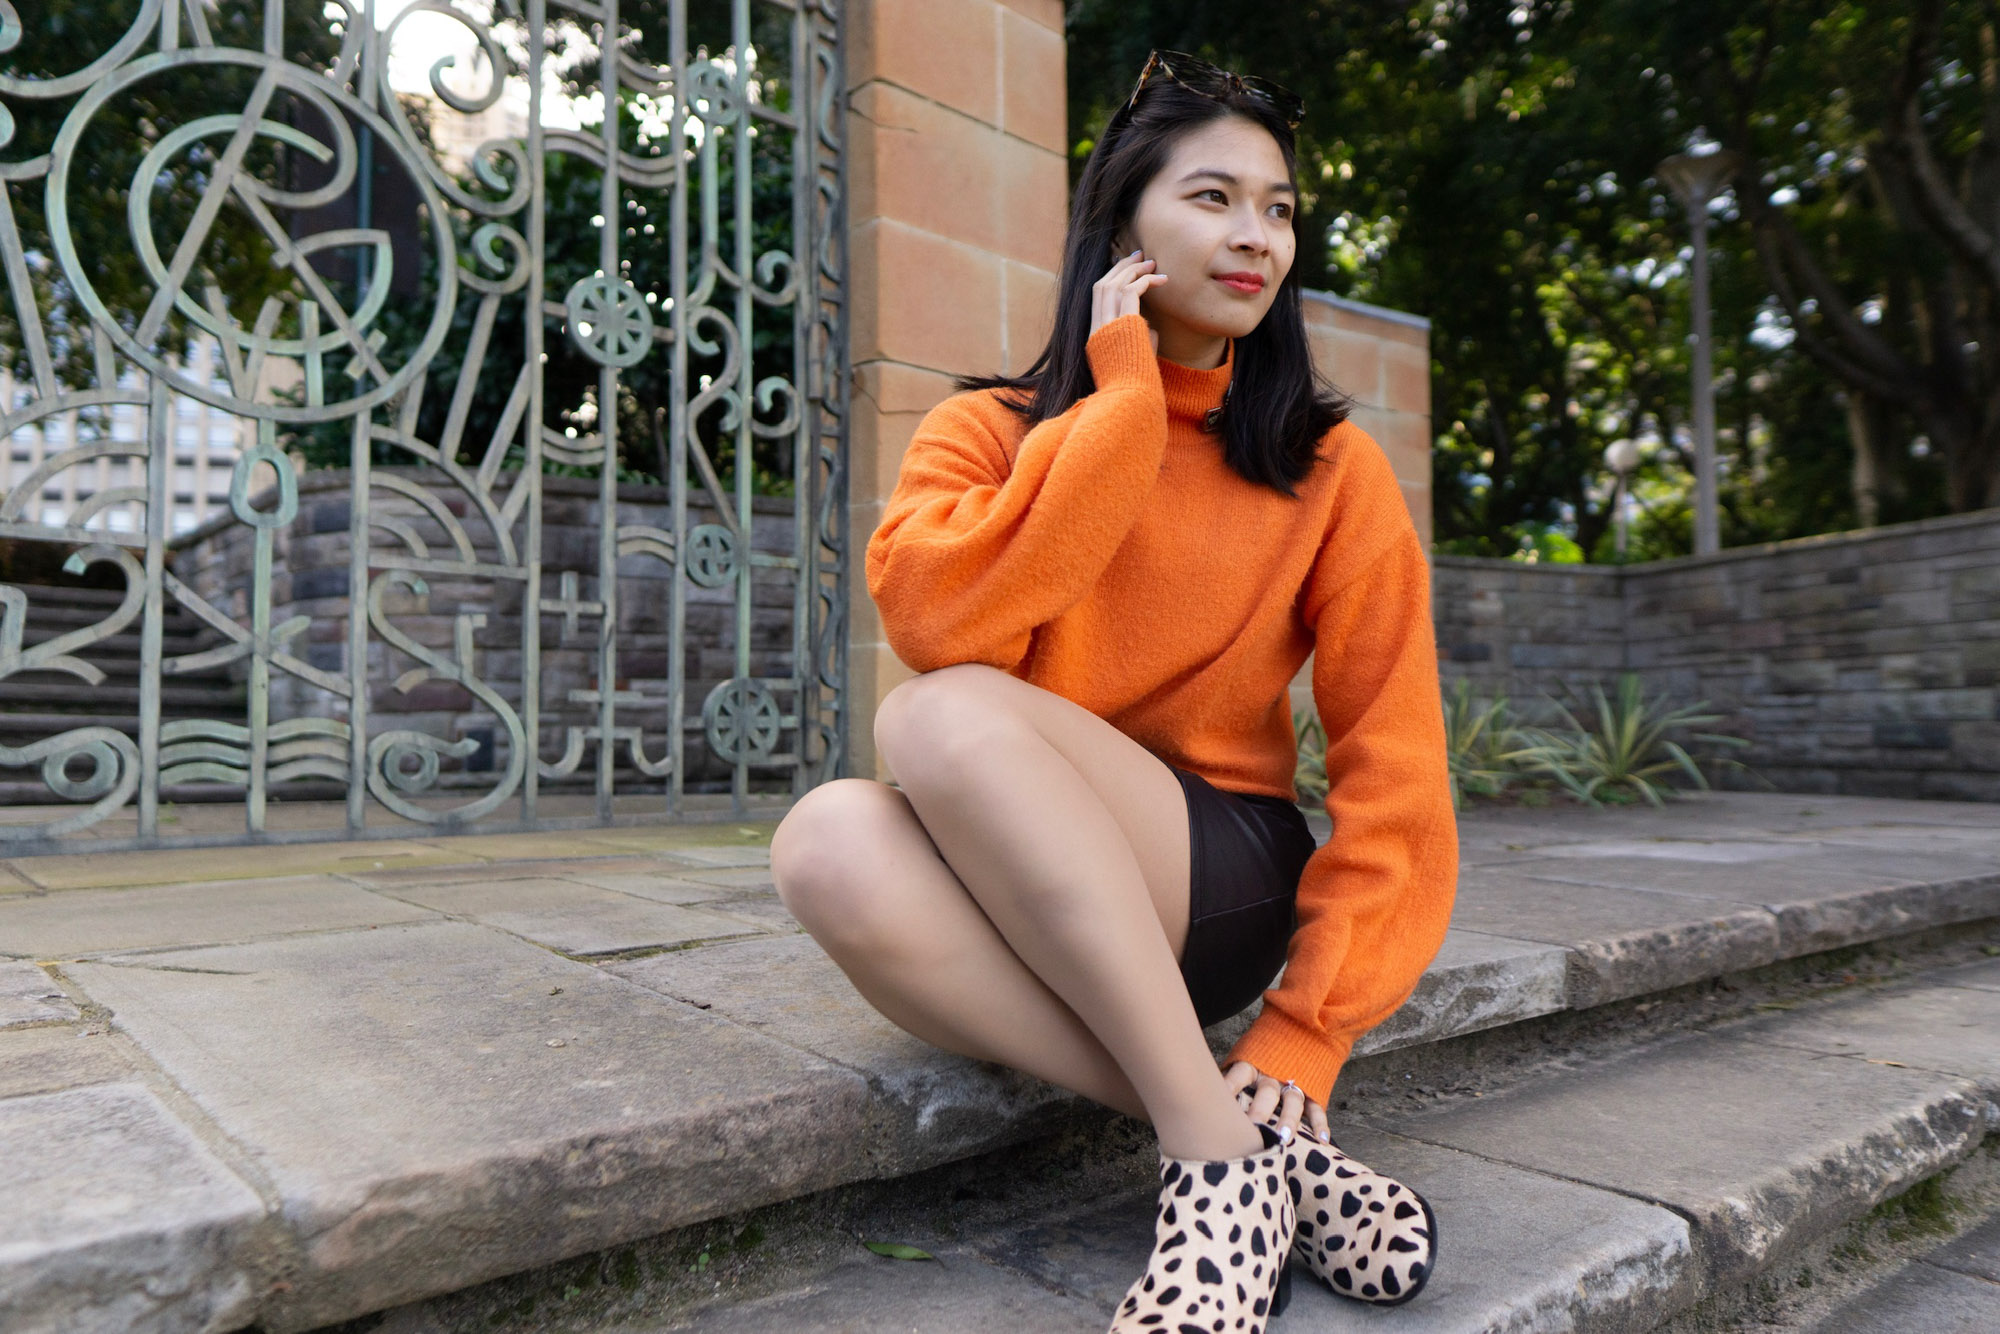 A woman sitting on stone steps. She is wearing a bright orange sweater and a black skirt. Her shoes are light in colour with black spots, resembling giraffe print. Behind her is a metal gate in a pattern.